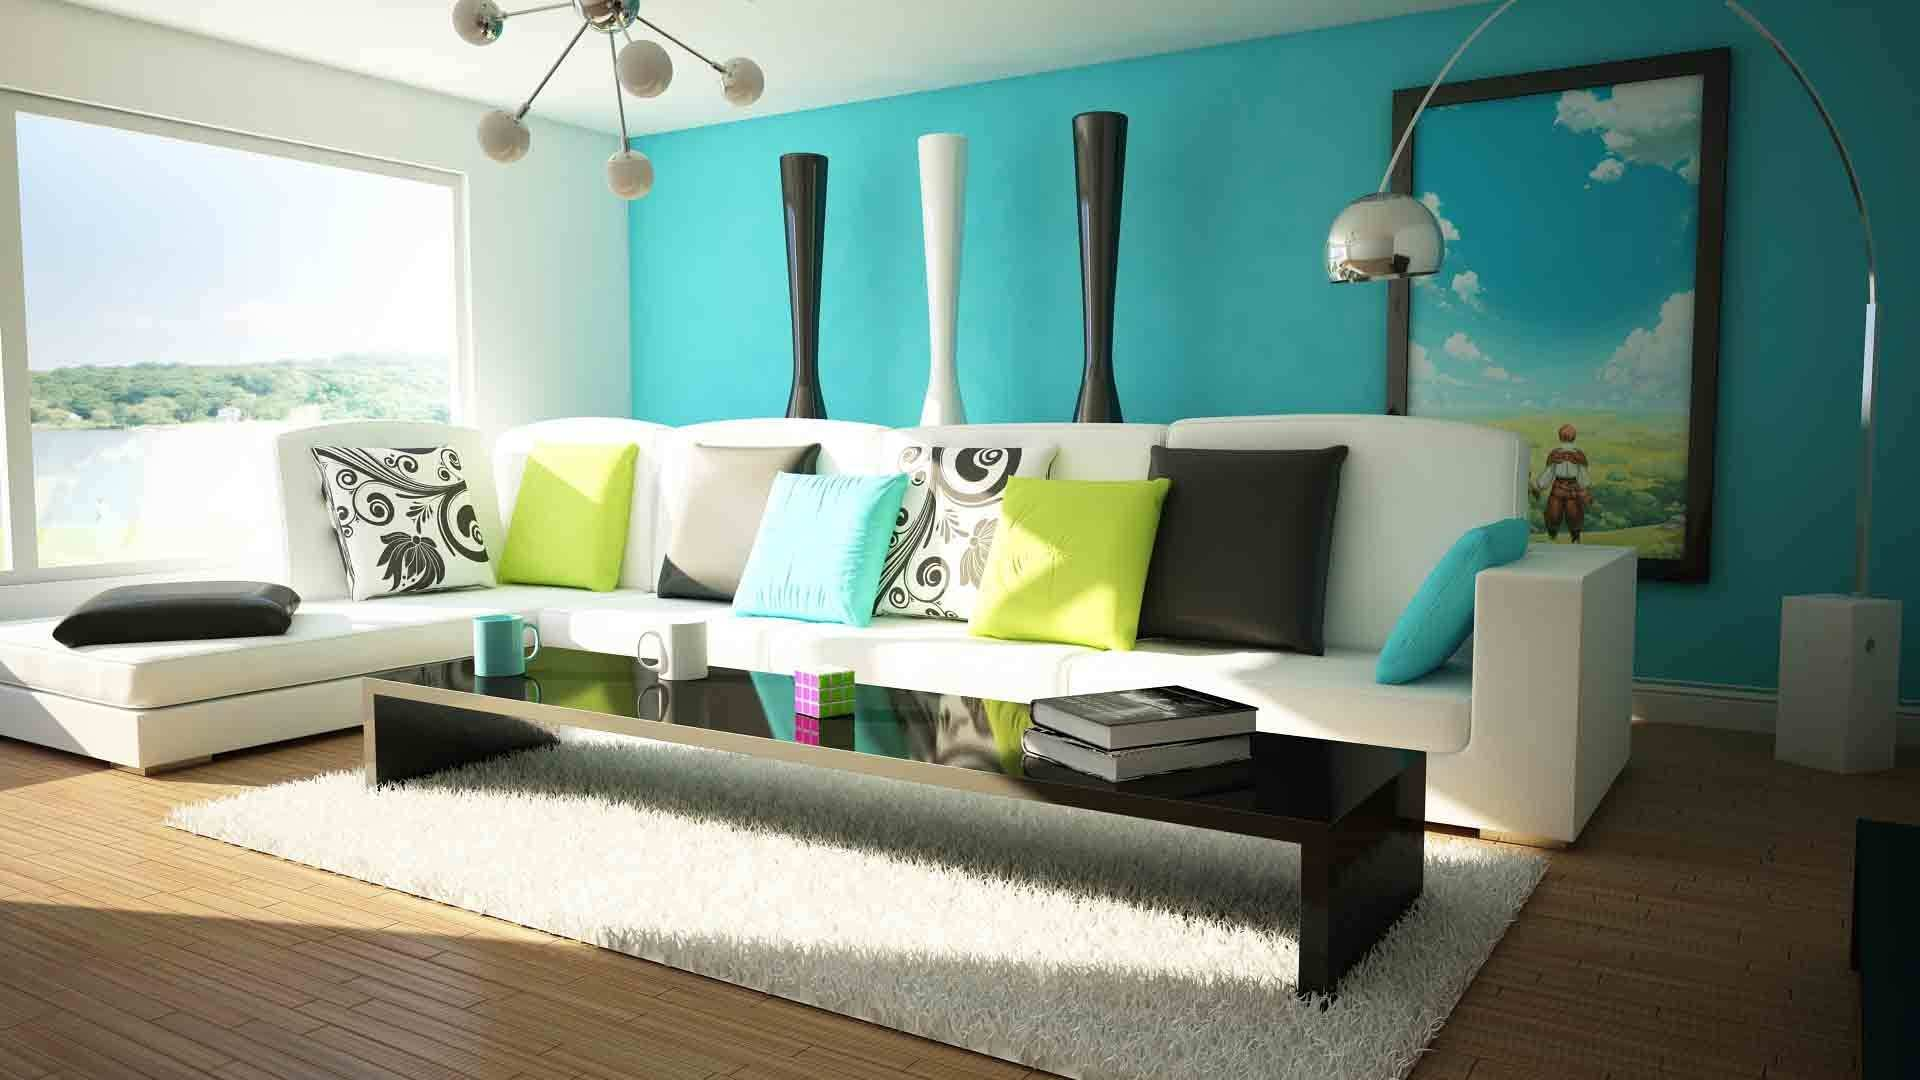 49 Lovely Wall Paint Ideas for Living Room Graphics